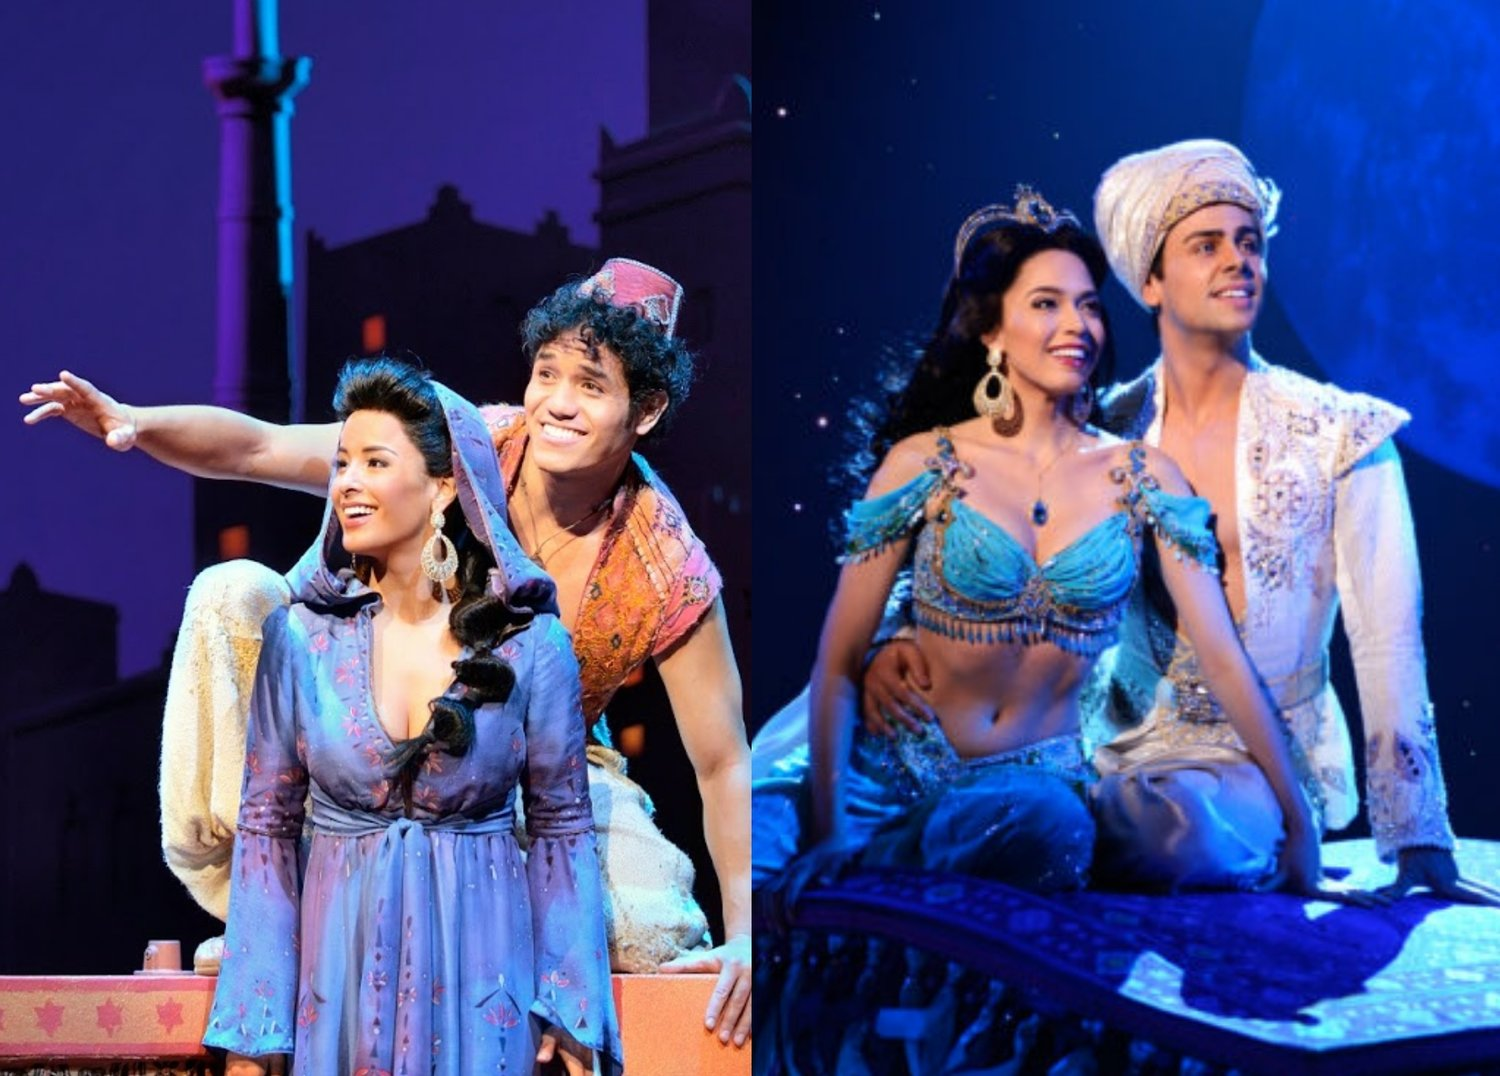 eed413af40 Catching Up With Aladdin's Hapa Leading Ladies Courtney Reed And Arielle  Jacobs — Hapa Mag